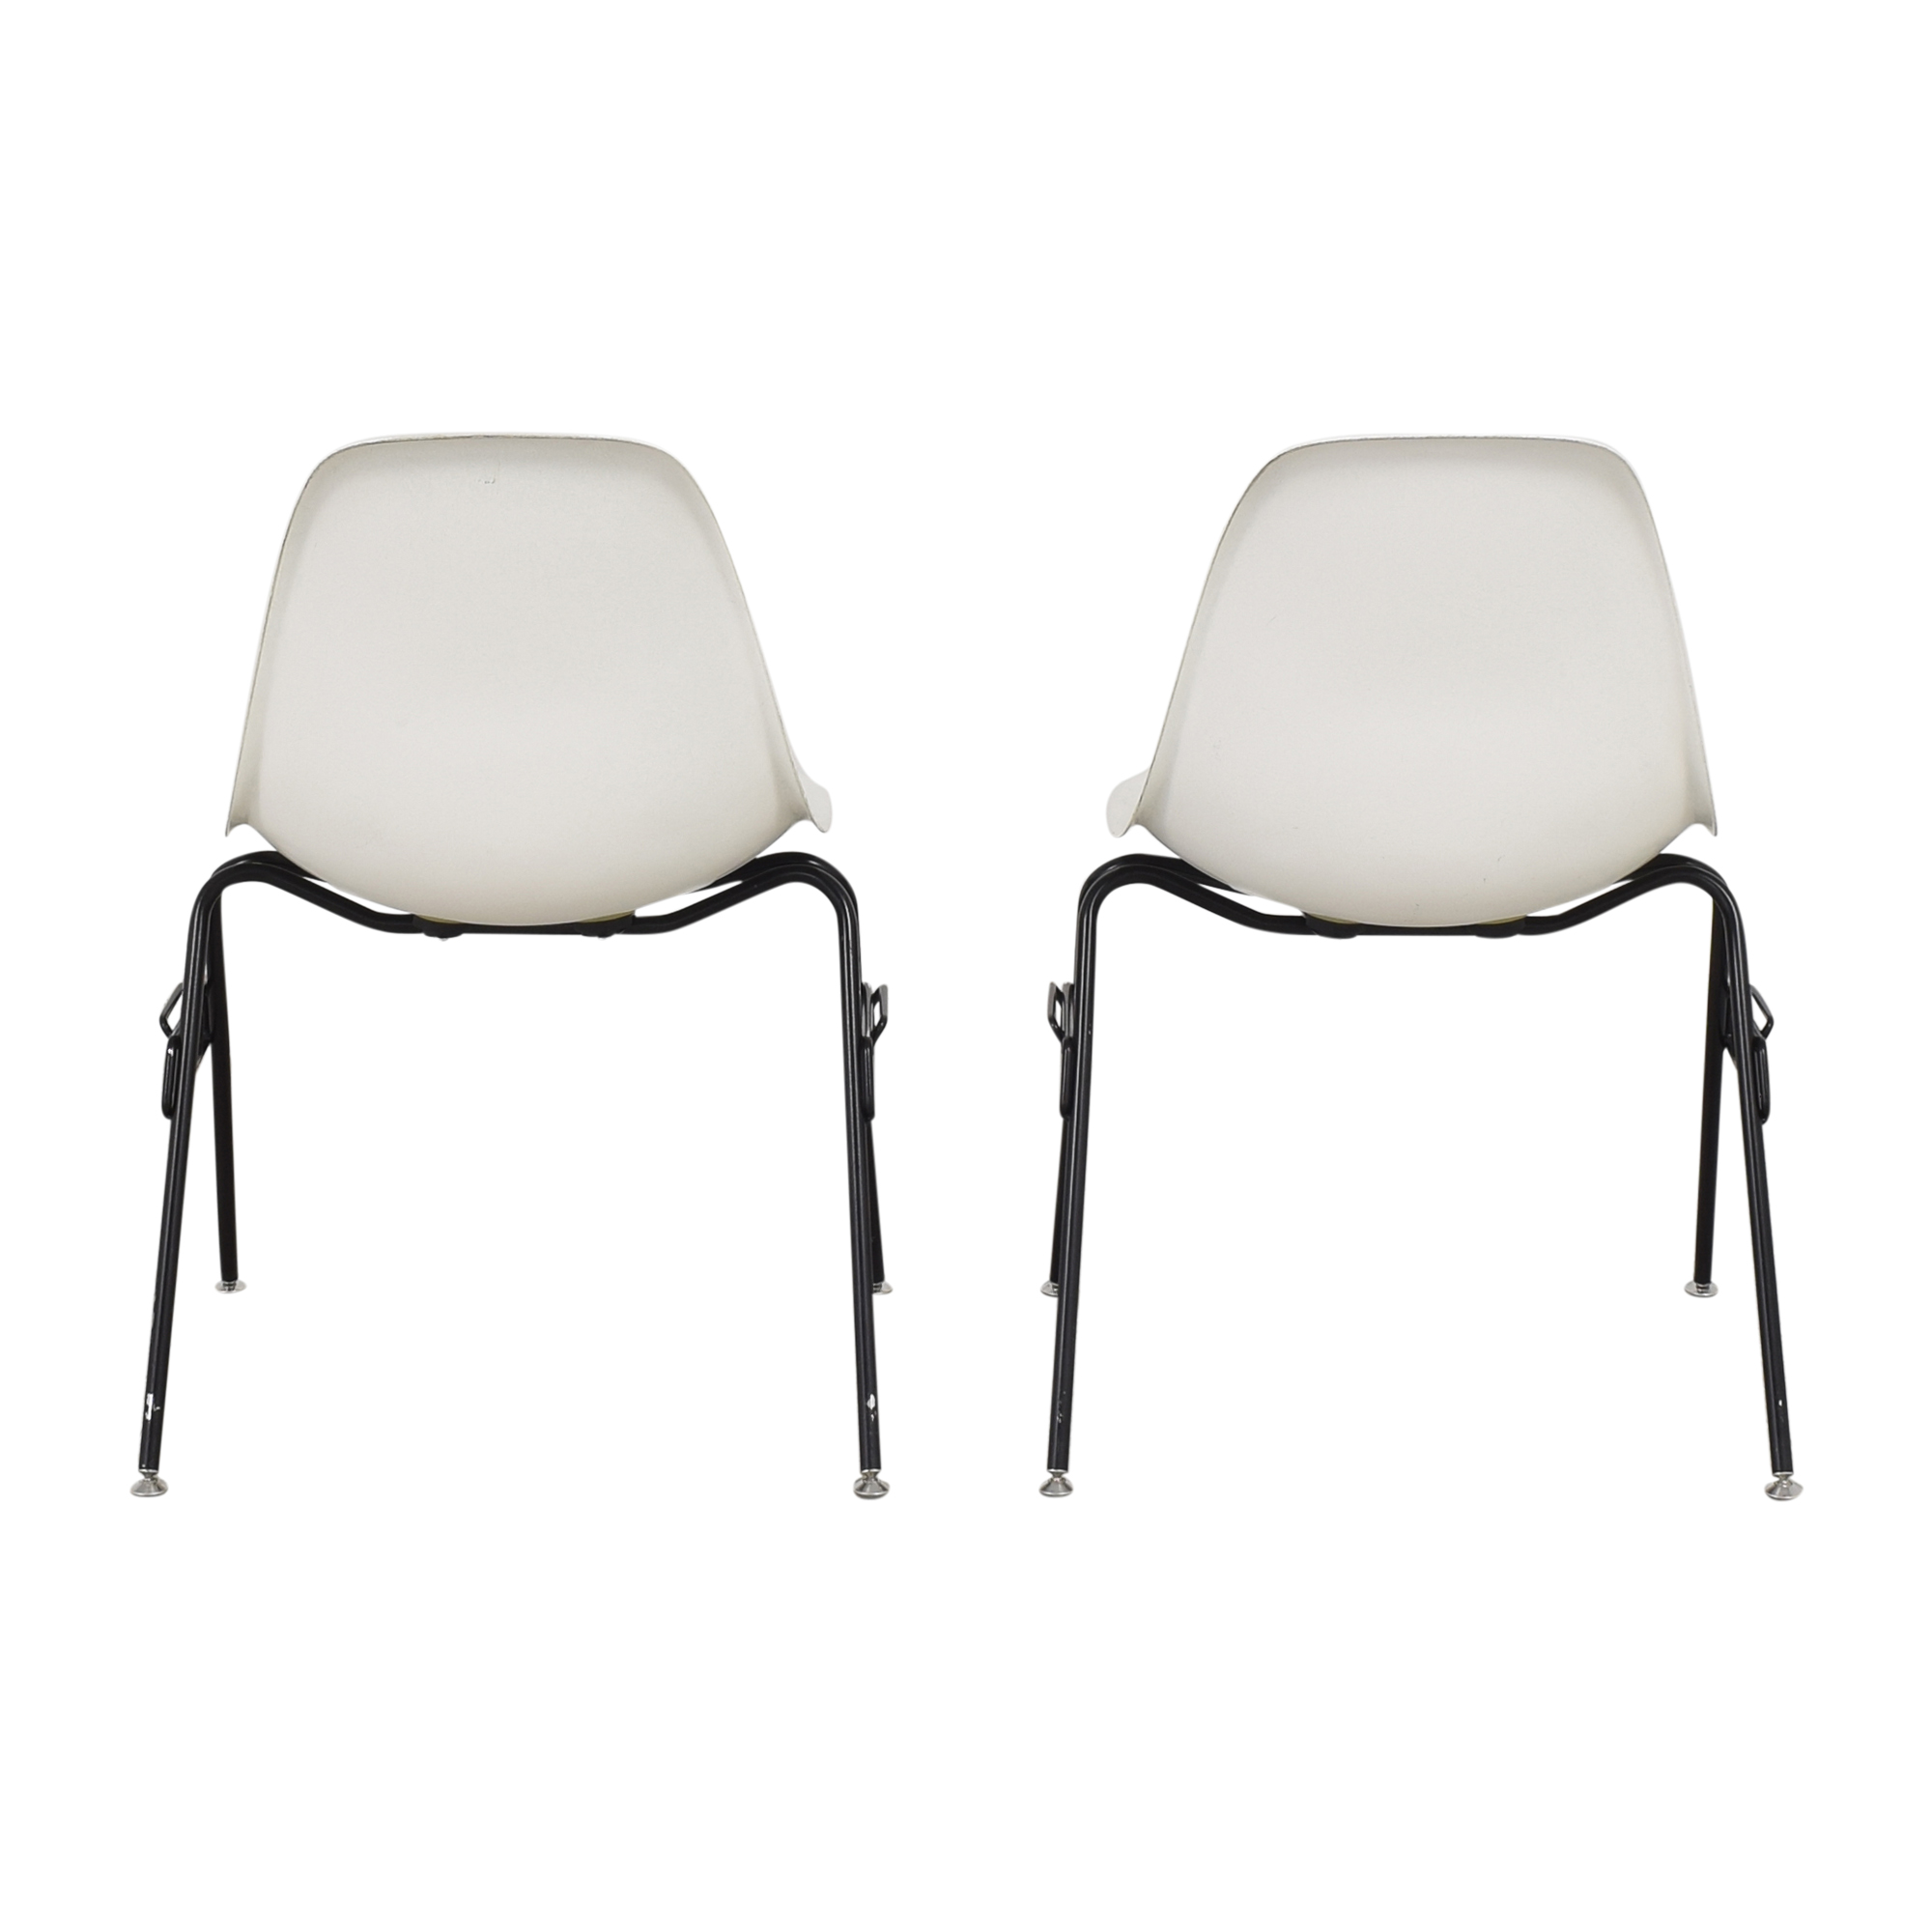 Modernica Modernica Case Study Furniture Side Shell Stacking Chairs nyc